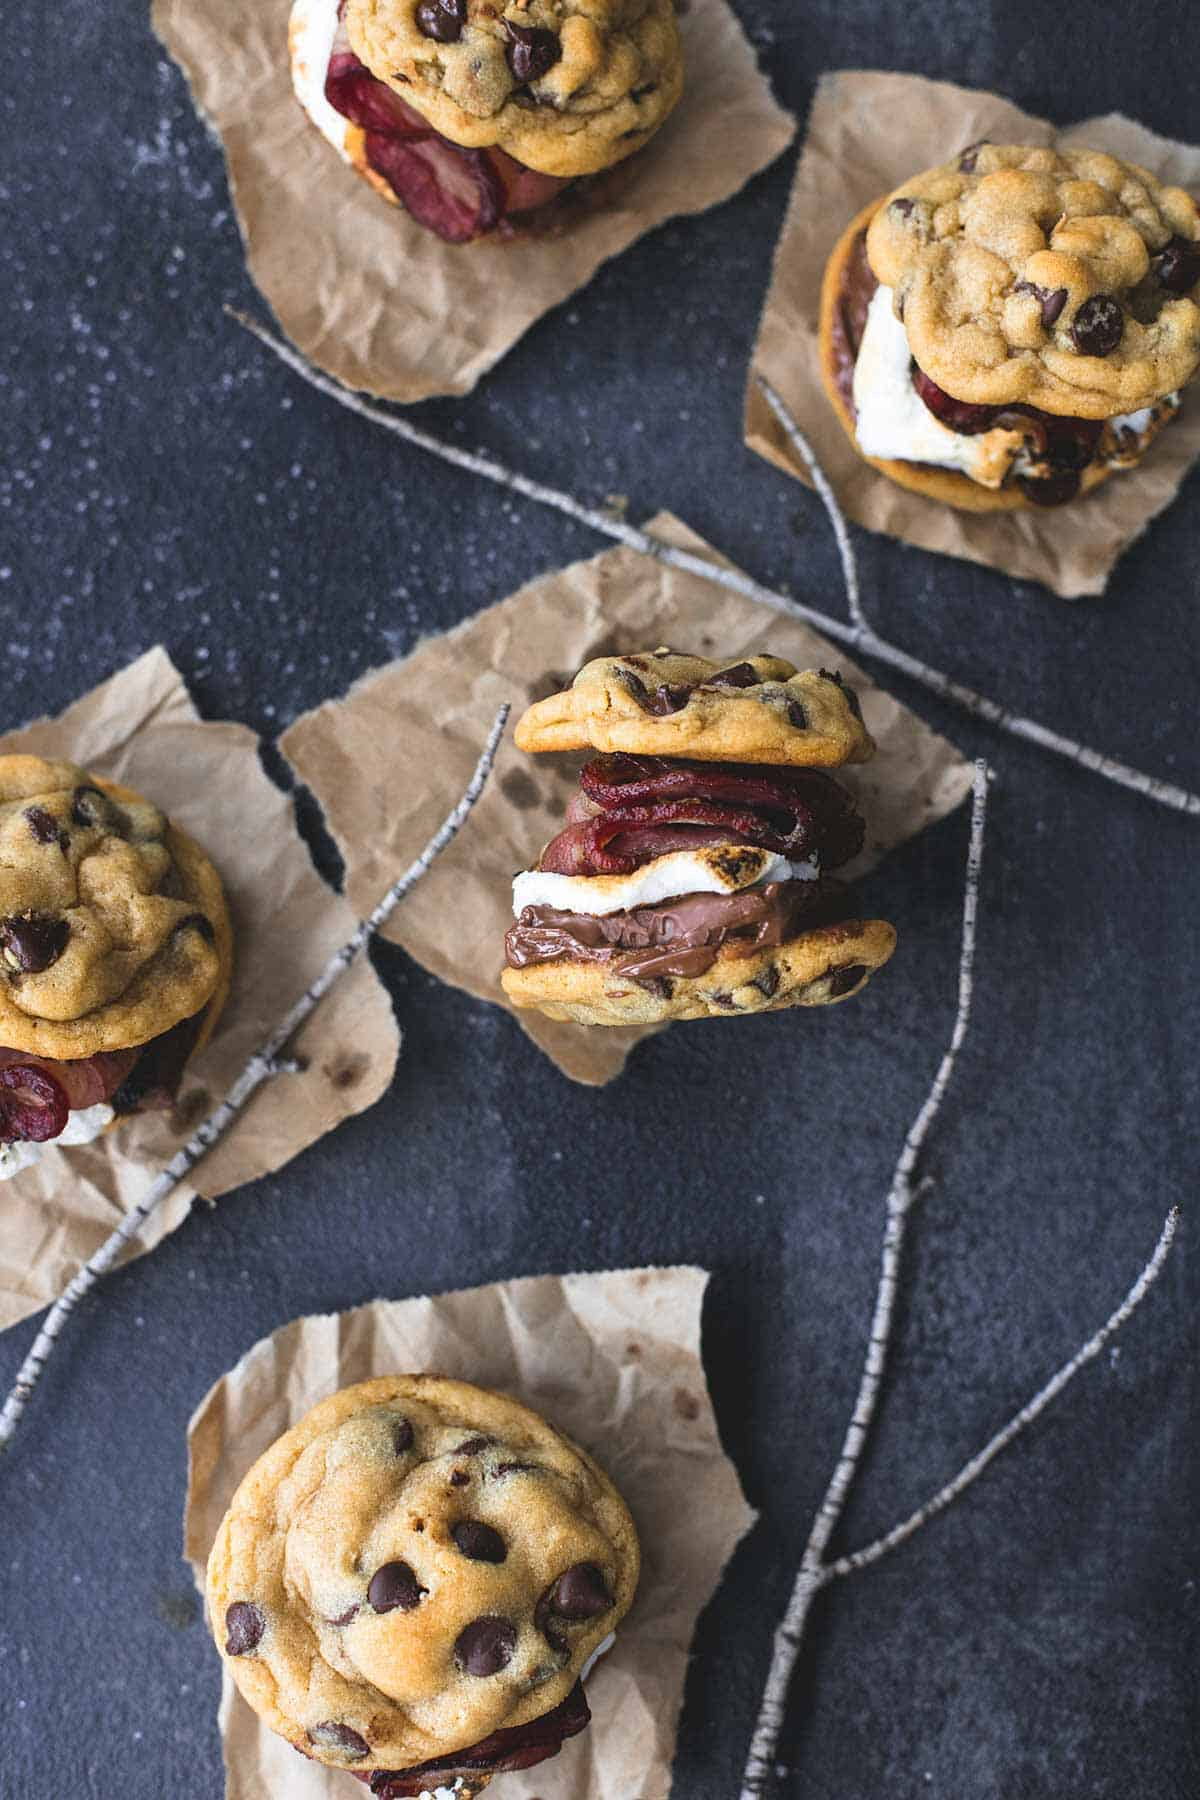 Grilled Chocolate Chip Cookie Bacon S'mores | lecremedelacrumb.com